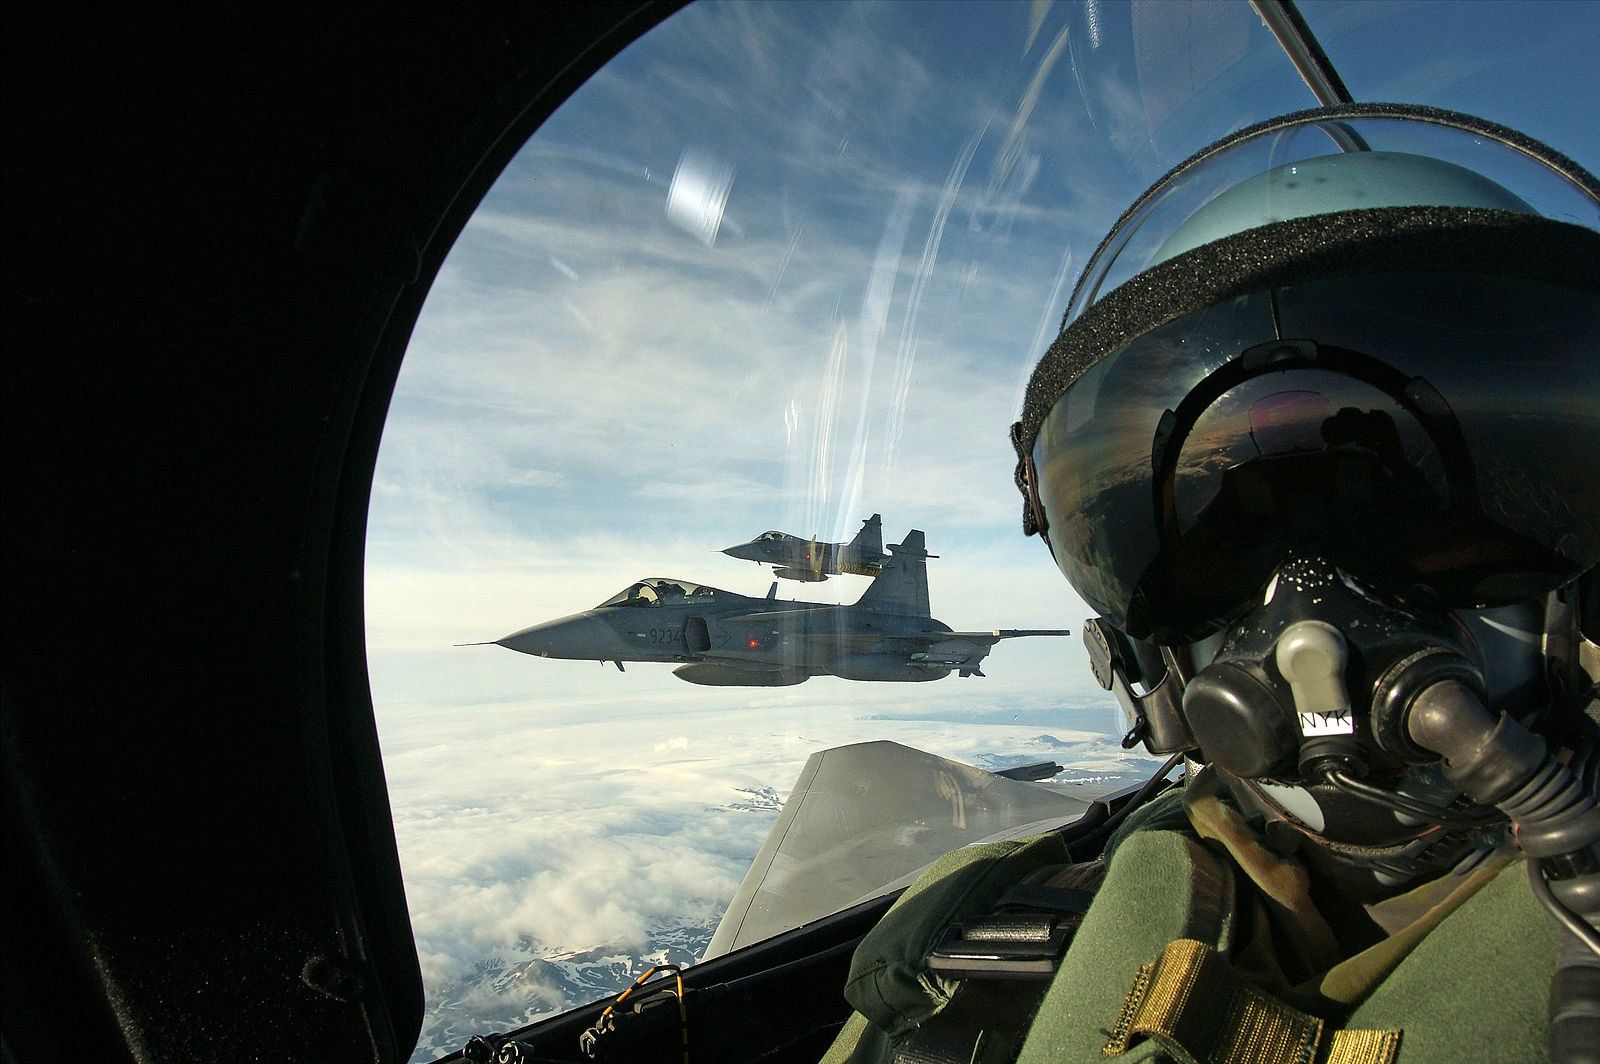 Selfie_in_a_Czech_Saab_Gripen_as_it_patrols_Icelandic_airspace